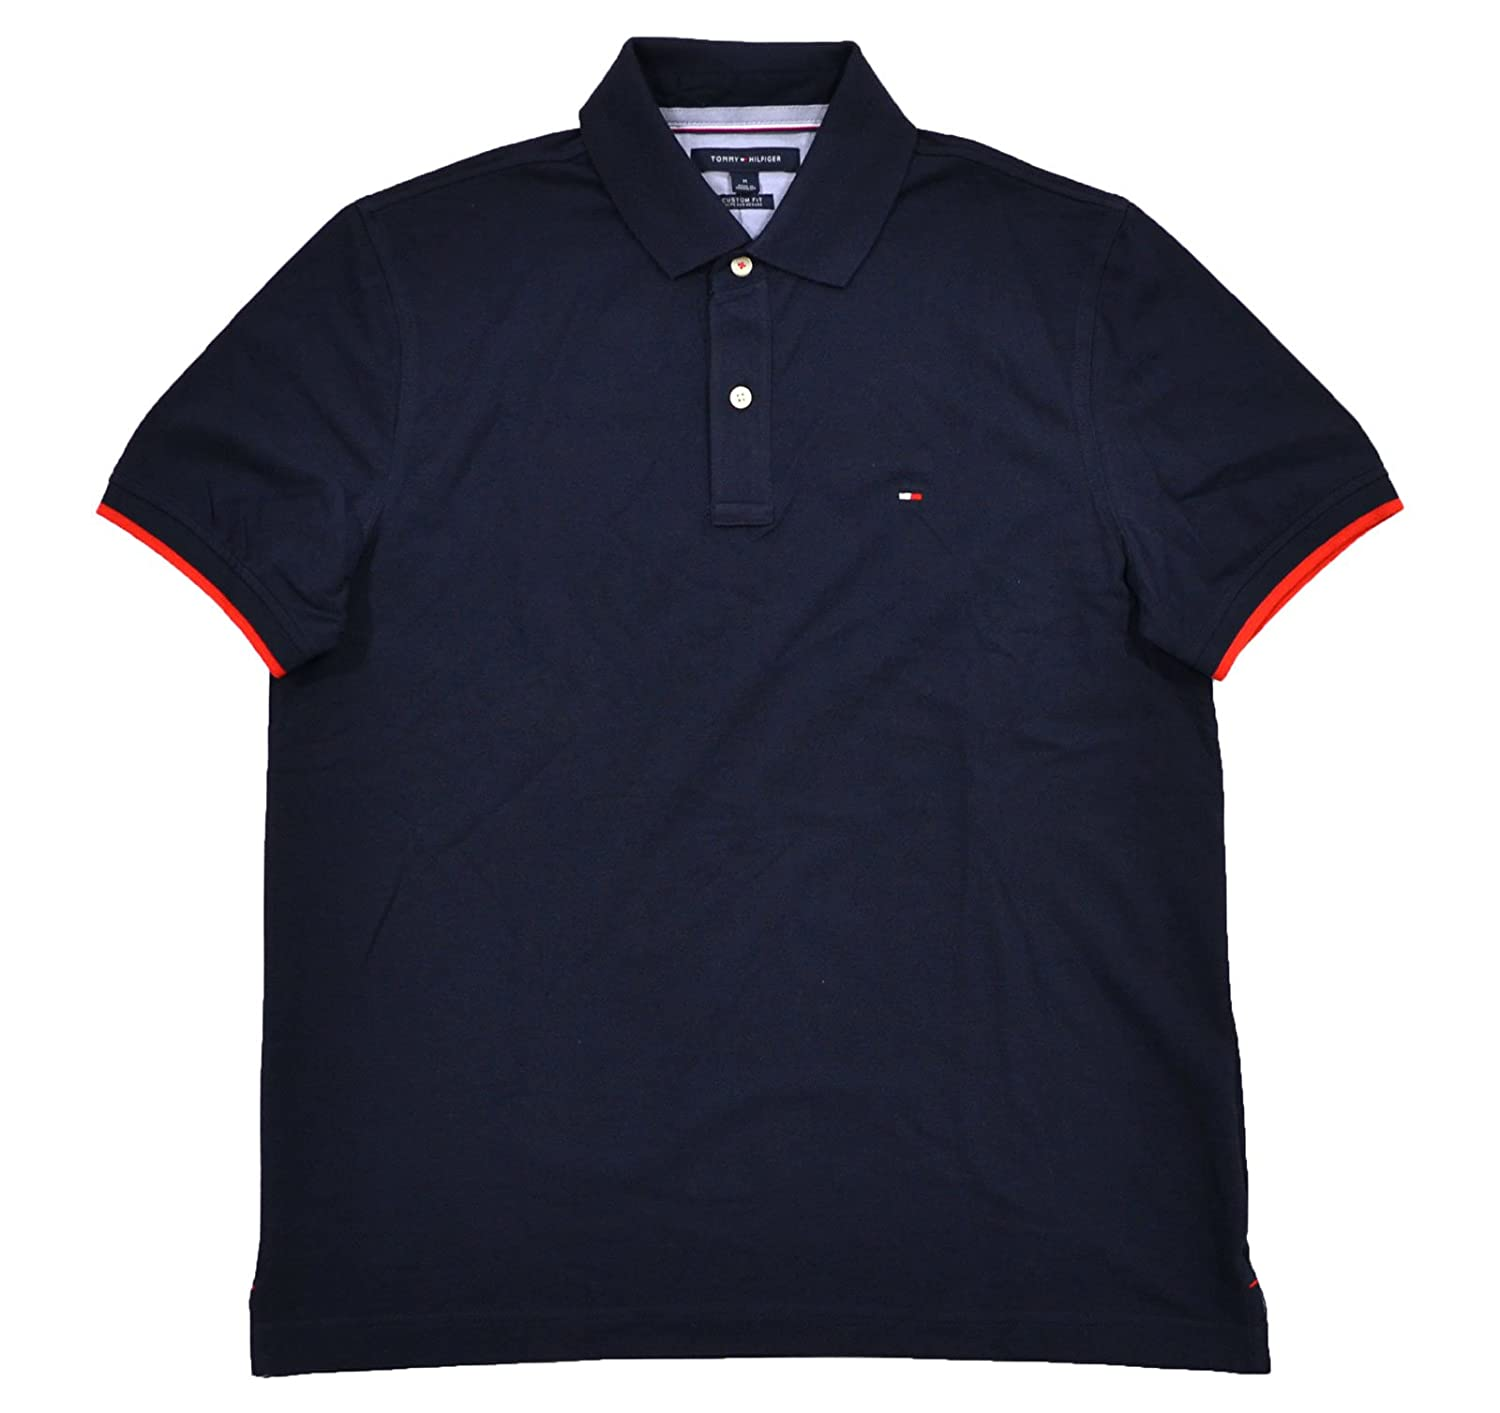 6ca0411c5 Tommy Hilfiger is the pinnacle of fashion and design. This mesh polo shirt  comes in a custom fit and has a contrasting color collar.